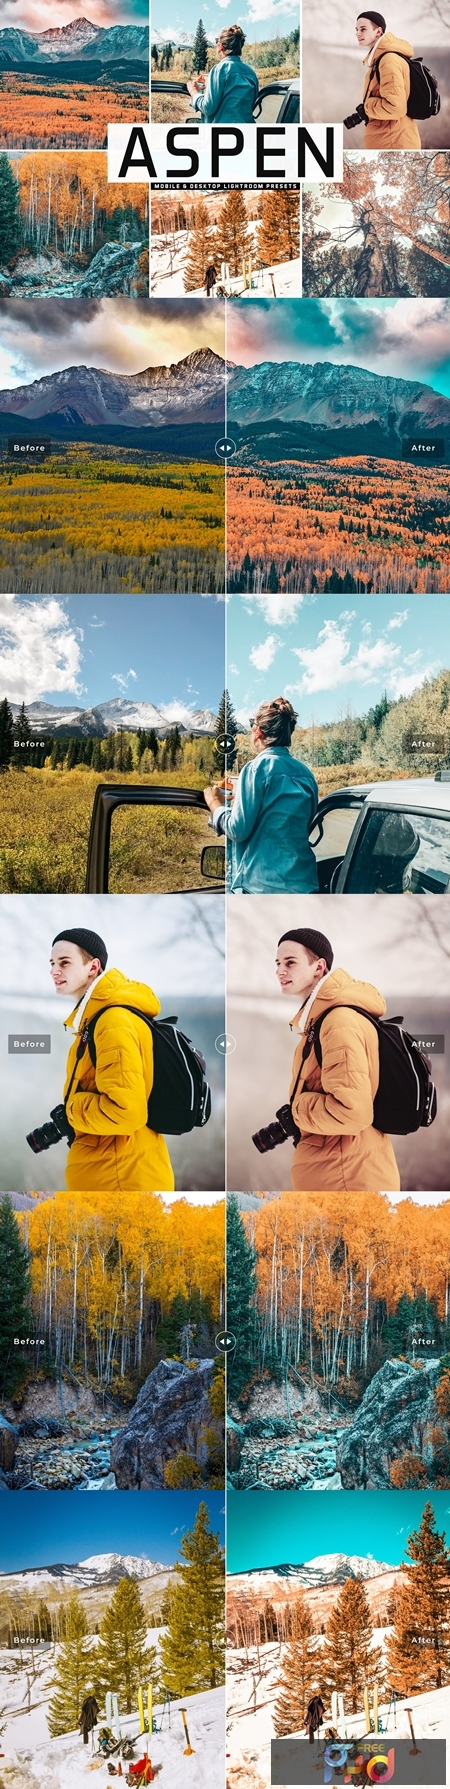 Aspen Mobile & Desktop Lightroom Presets 3927944 1